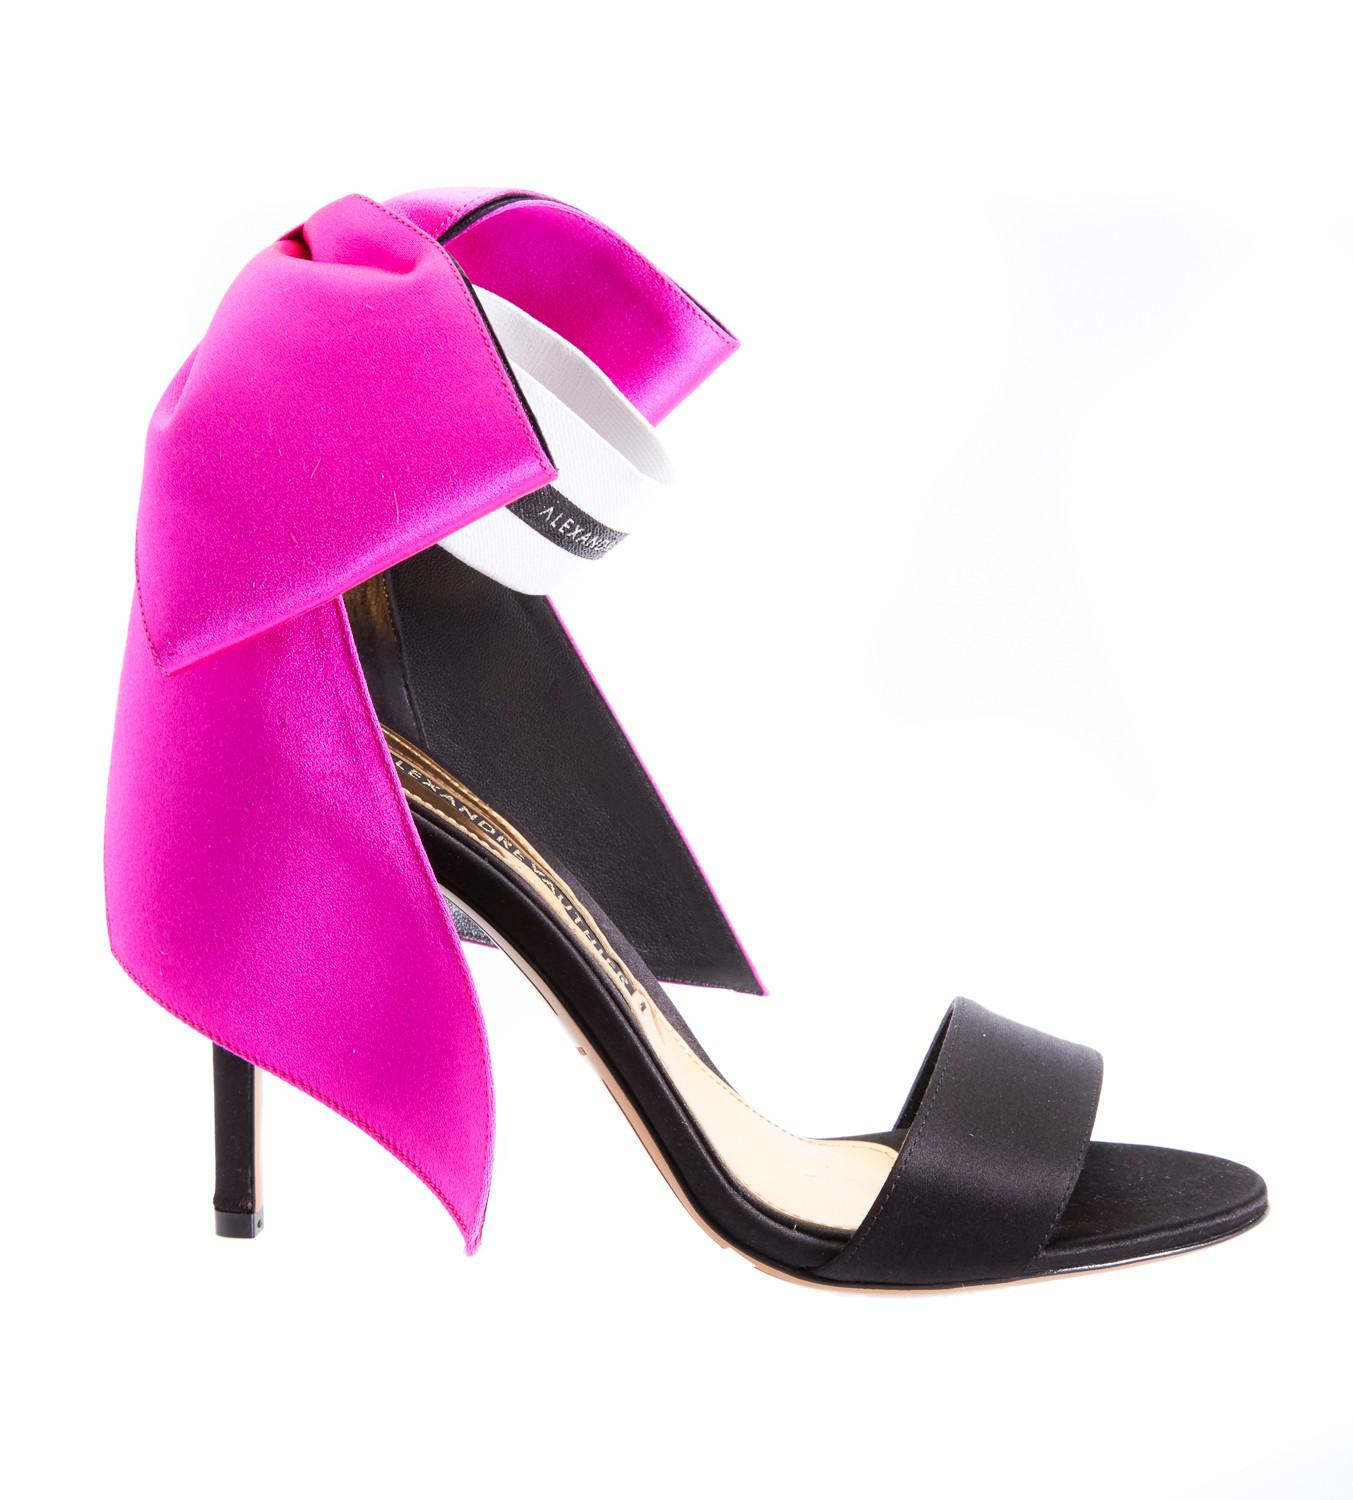 0b5cd6f532c Lyst - Alexandre Vauthier Bow Pink Open Toe Ankle Strap Heel in Pink